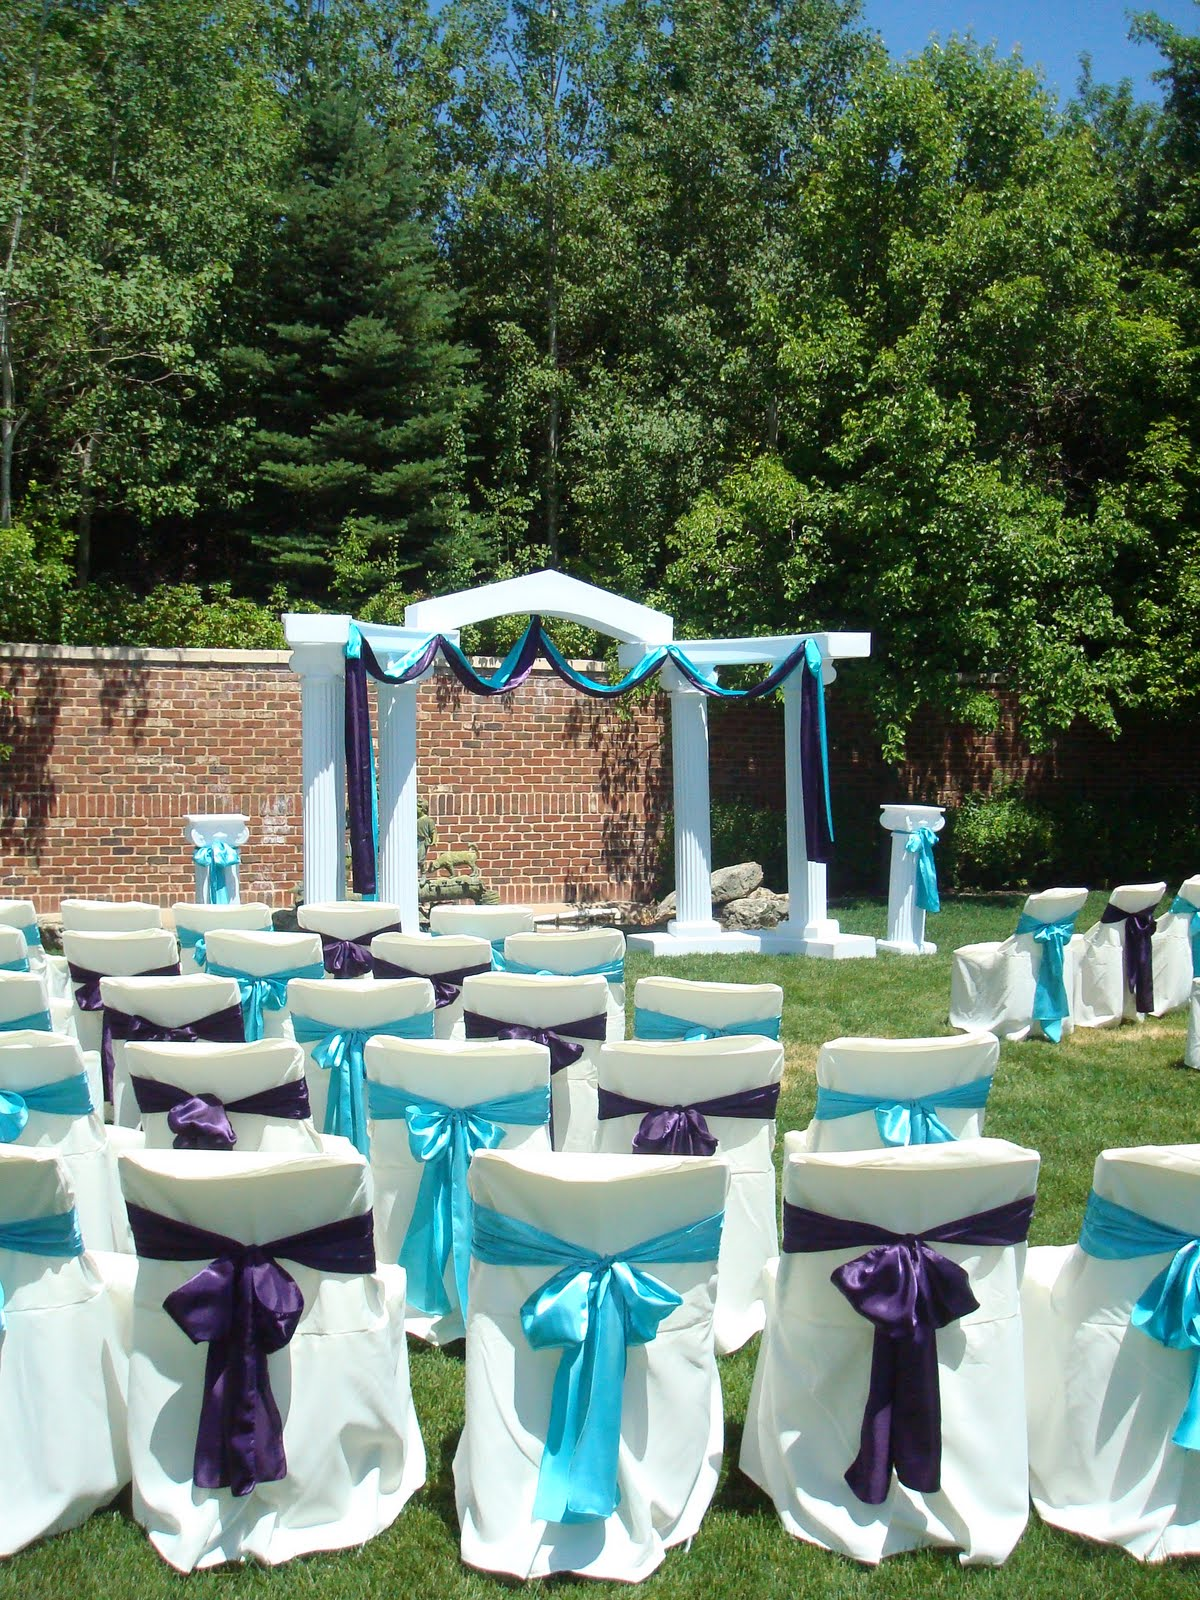 Wedding Ideas Backyard :  blog country backyard wedding ideas country backyard wedding